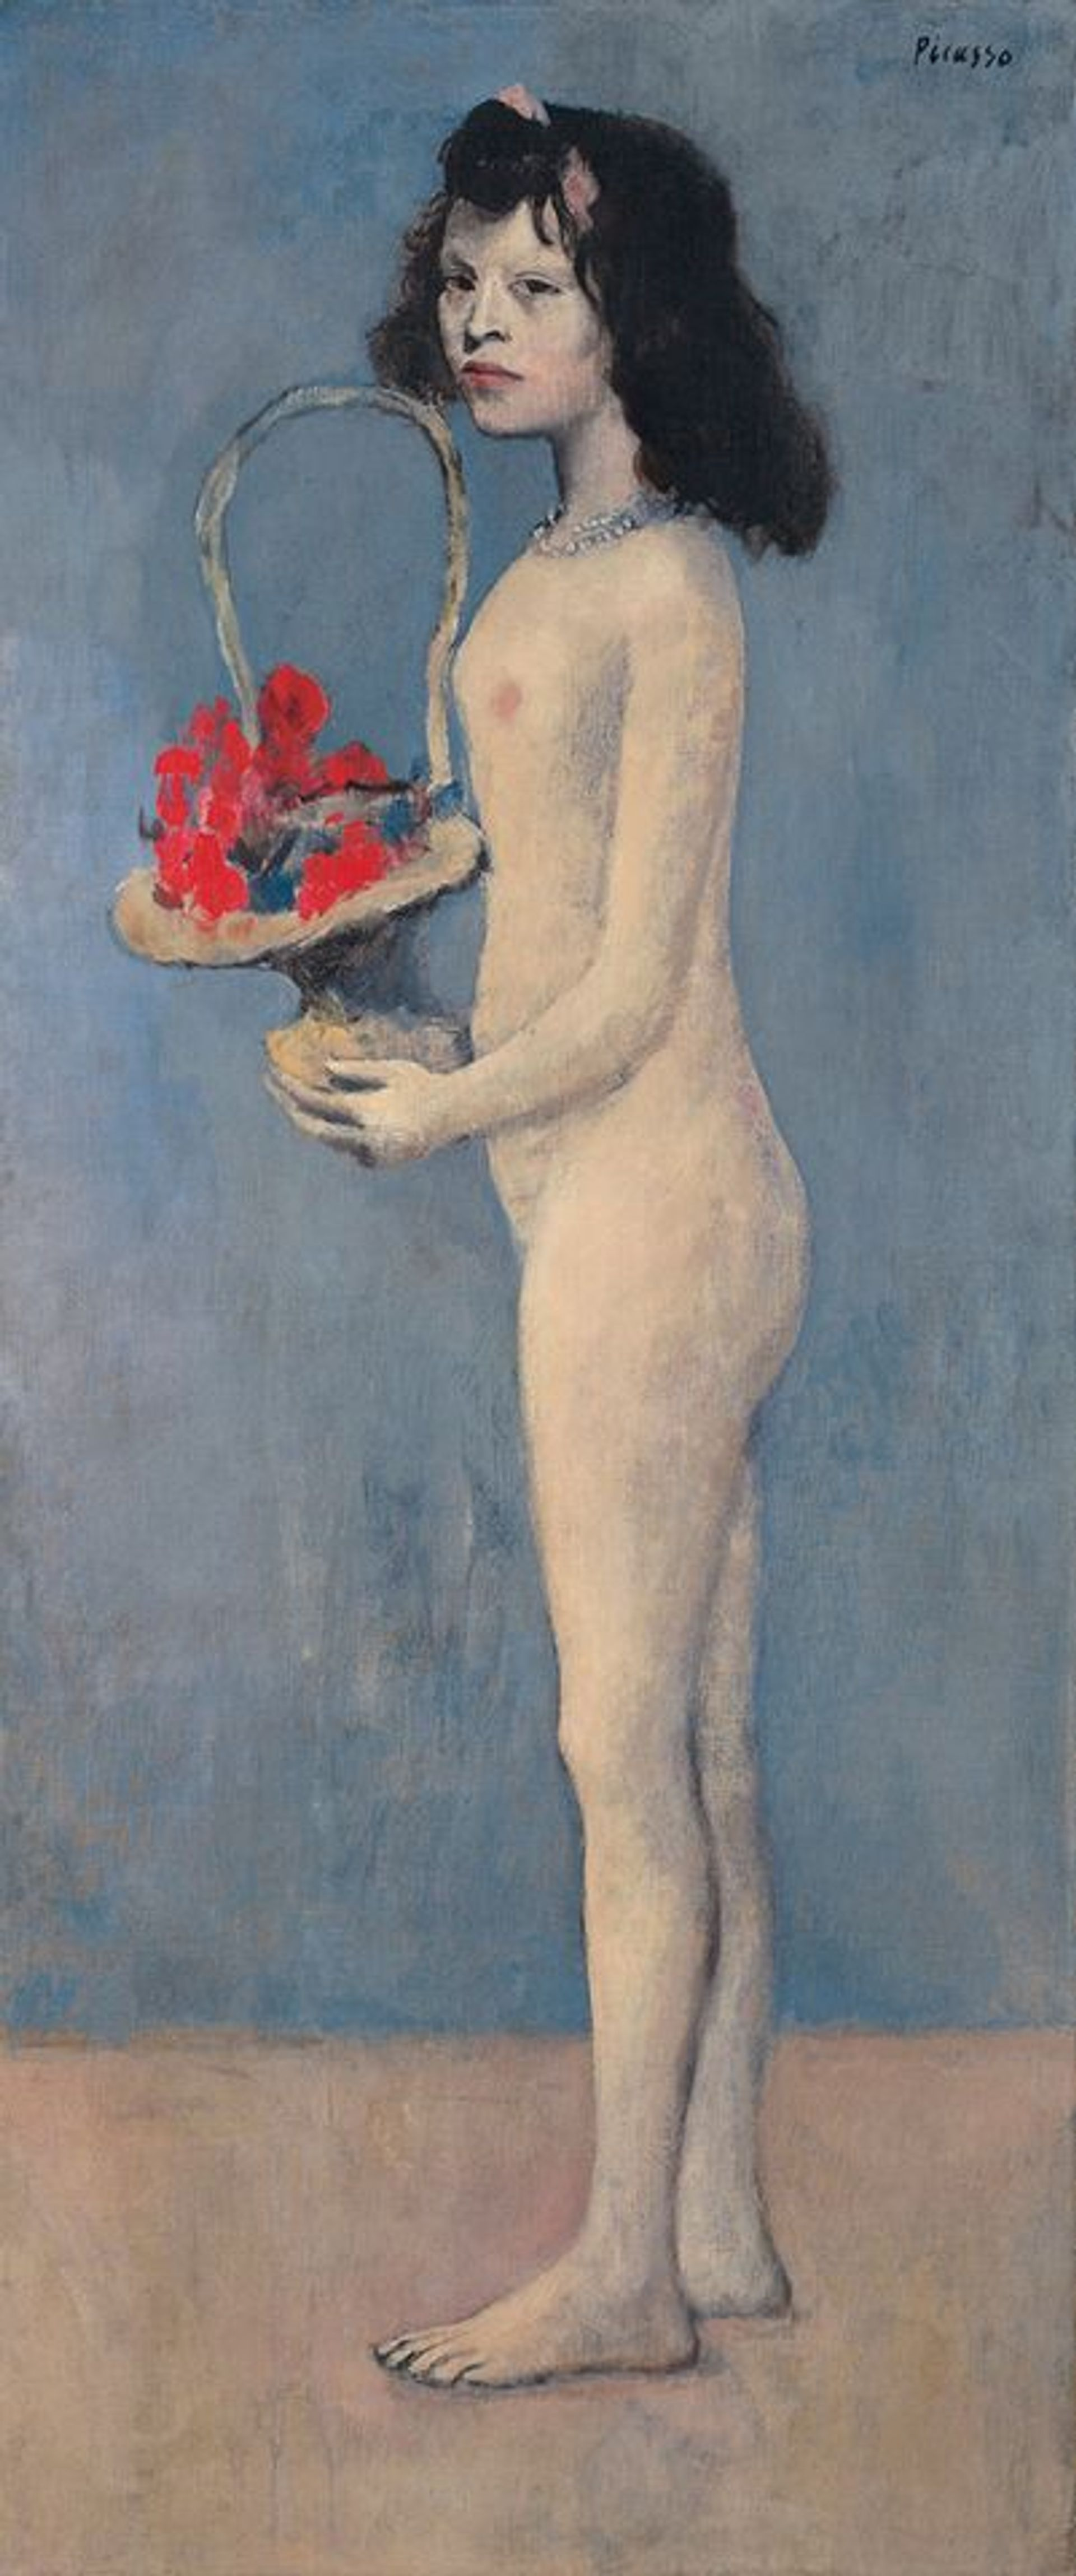 Picasso's Fillette à la corbeille fleurie (Young Girl with a Flower Basket, 1905) sold for $115m at Christie's last week Christie's Images